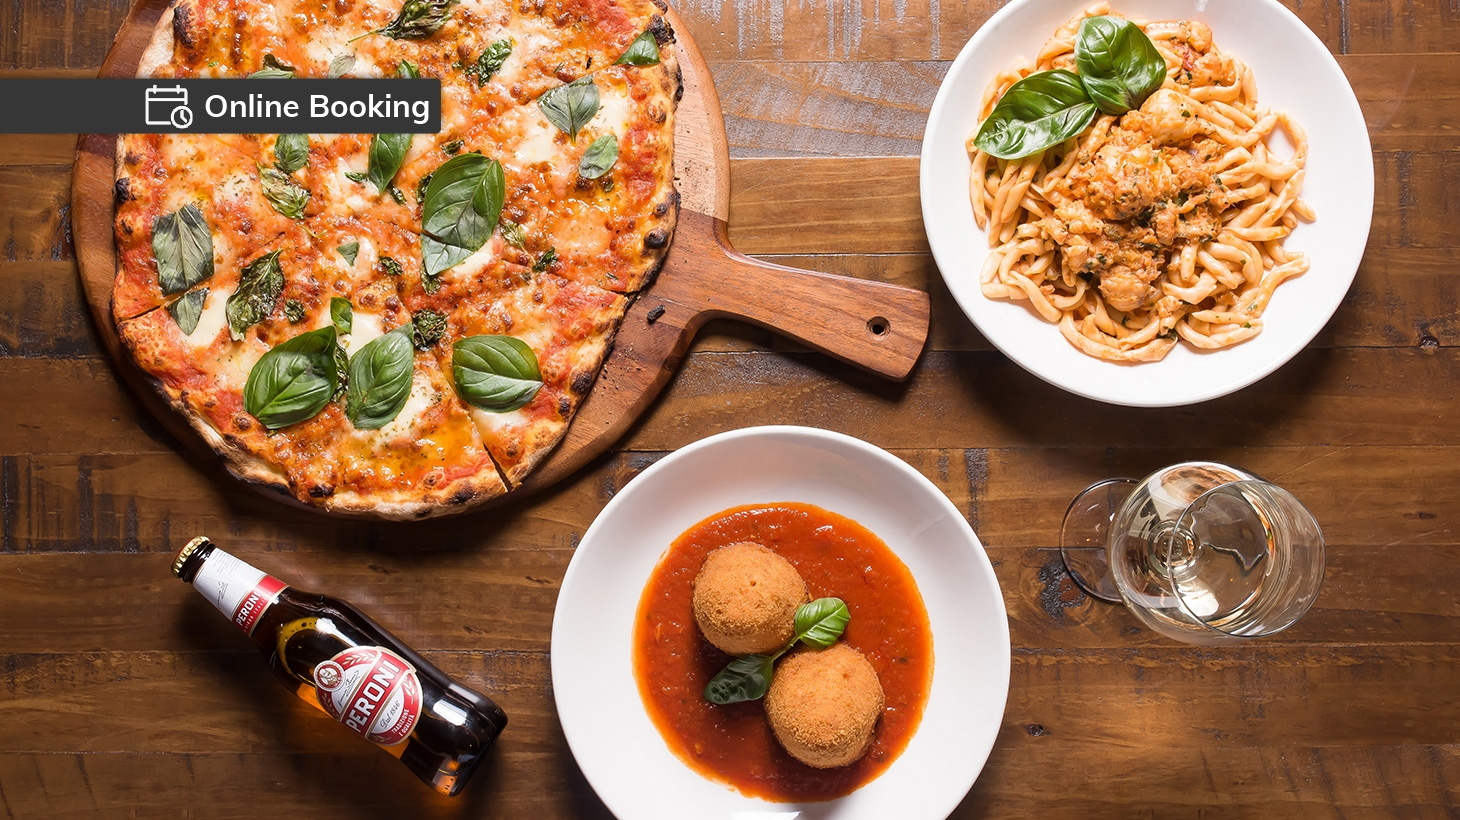 Italian dishes including arancini, pizza and pasta for two served with drinks